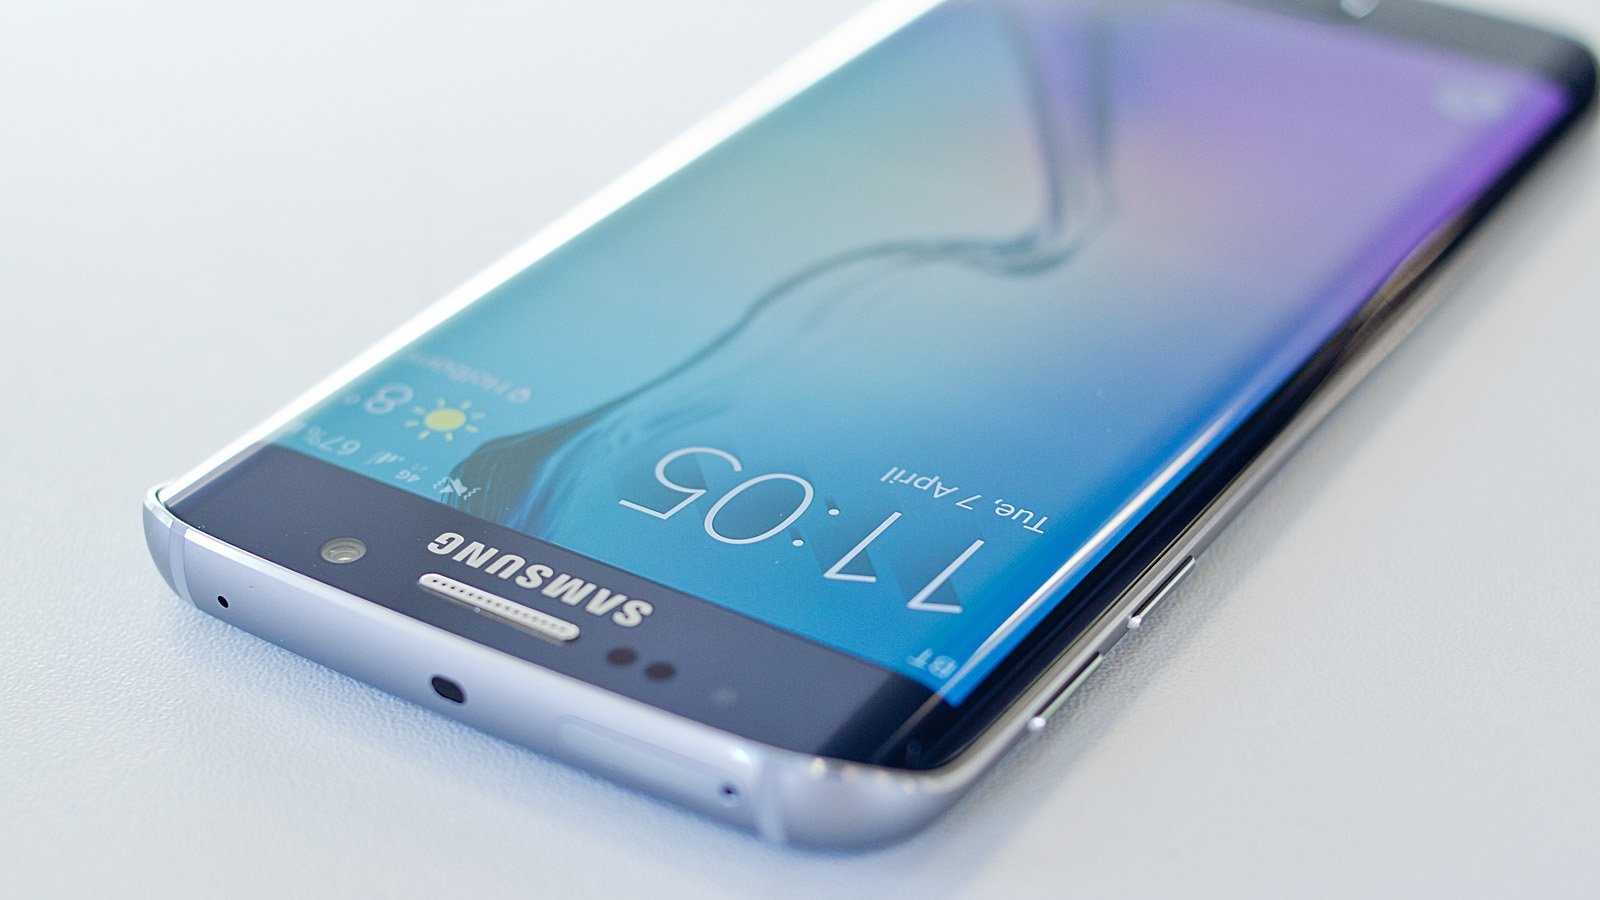 Samsung Will Release Three Versions of the Galaxy S7